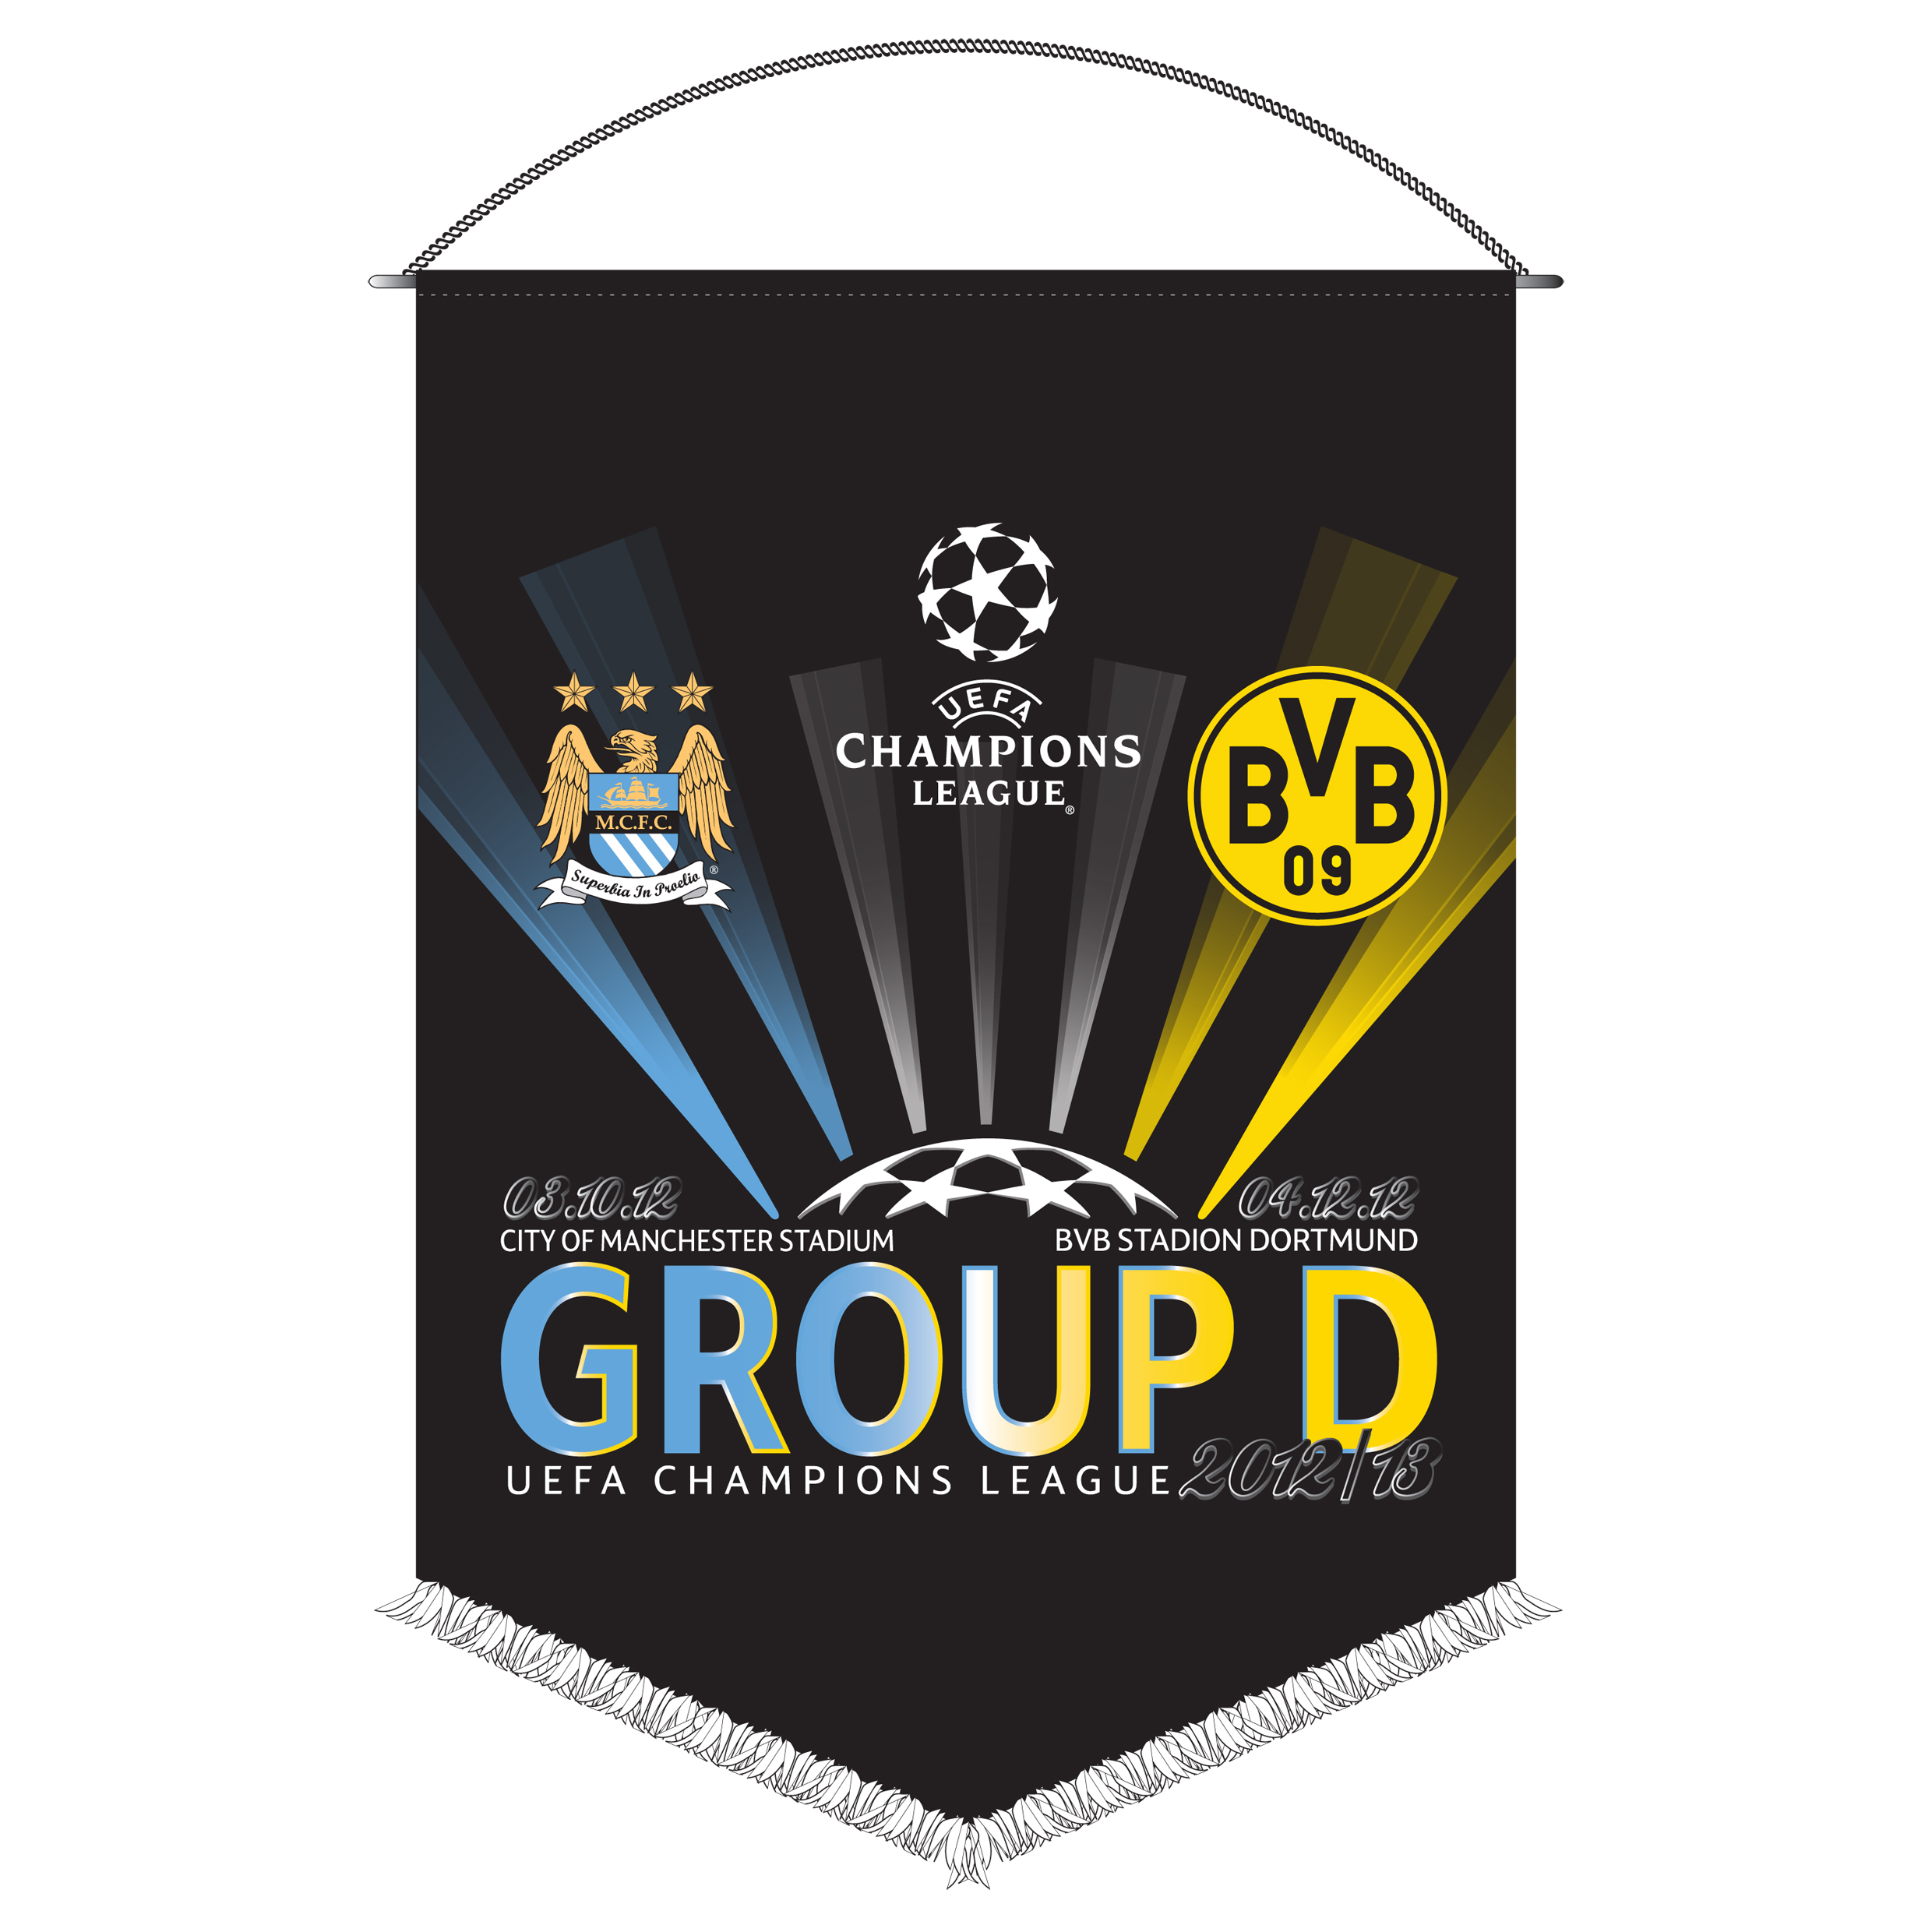 Manchester City Champions League Friendship Pennant - Borussia Dortmund